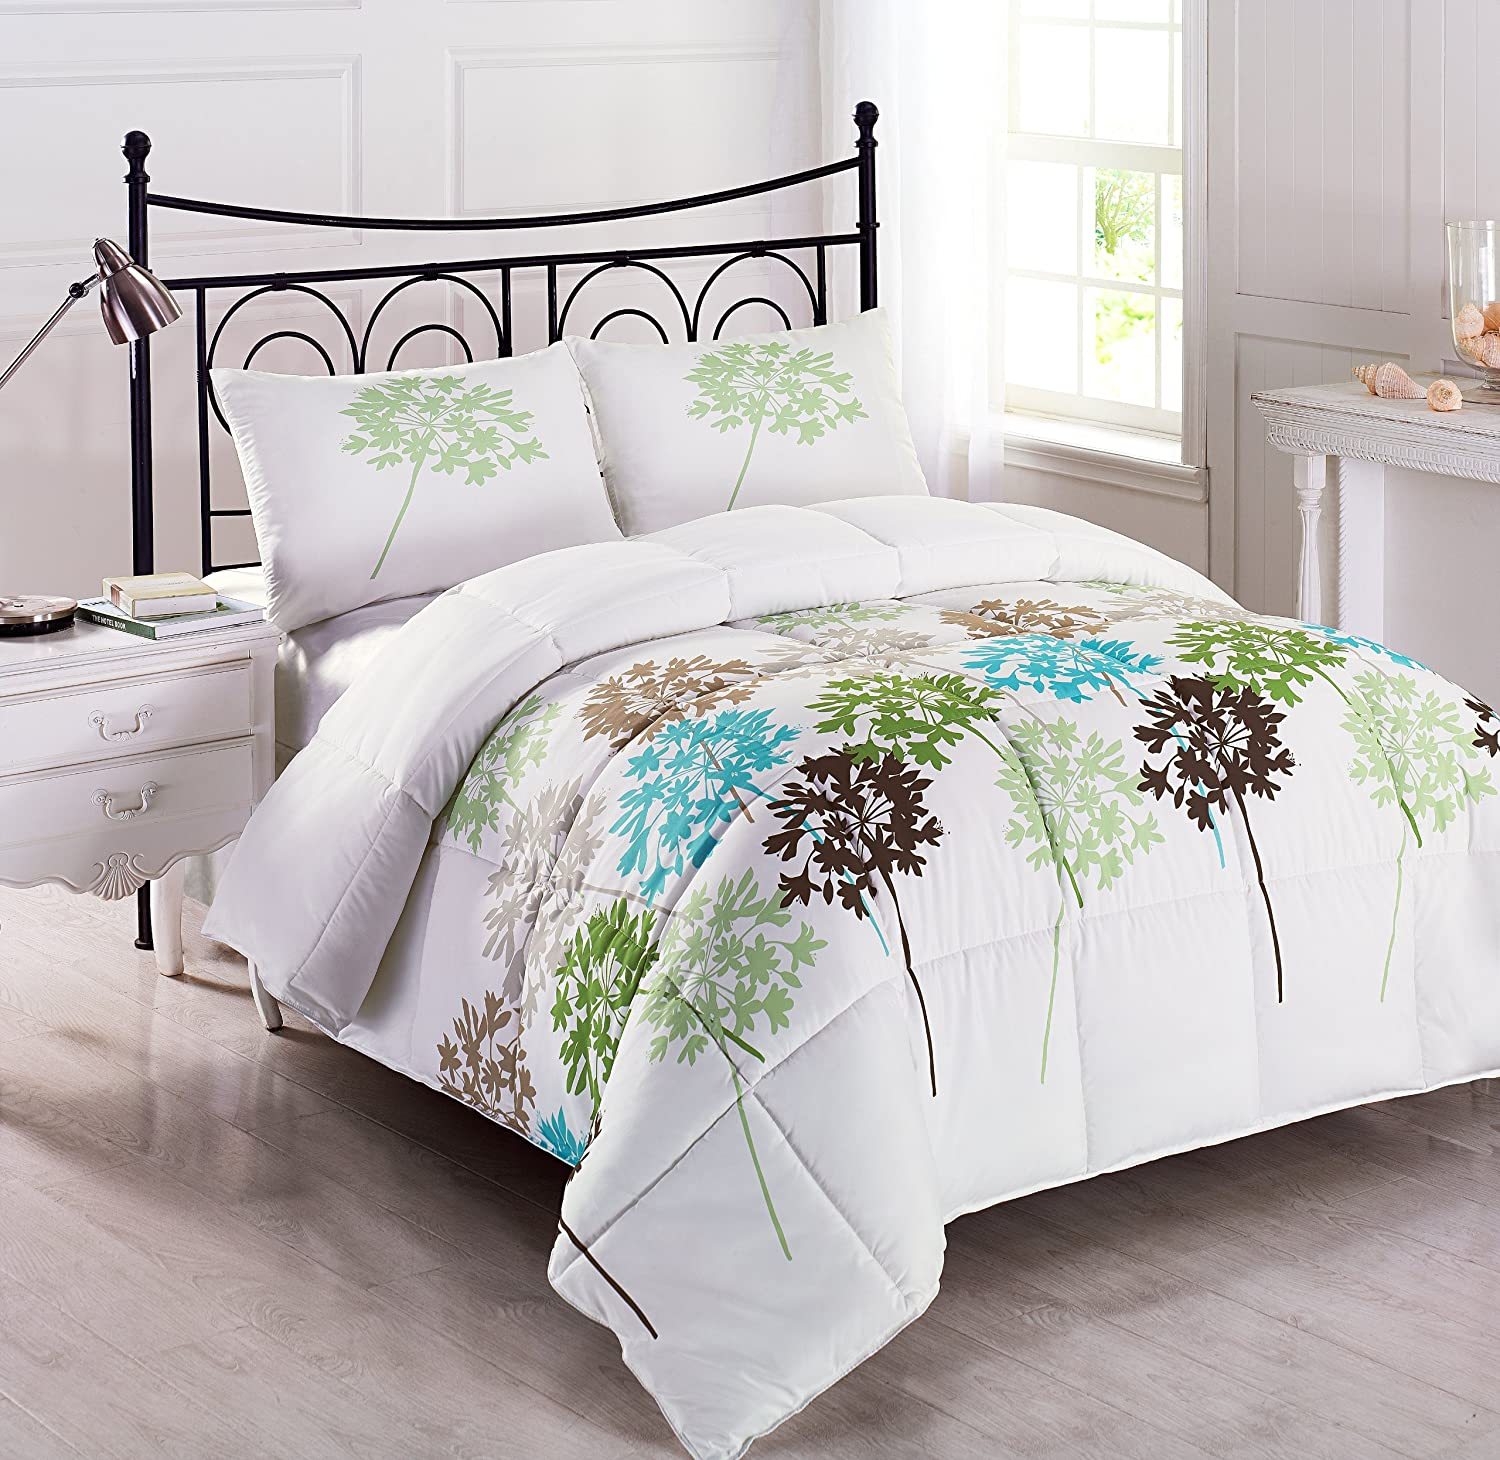 Spring Time Bedding And Comforters